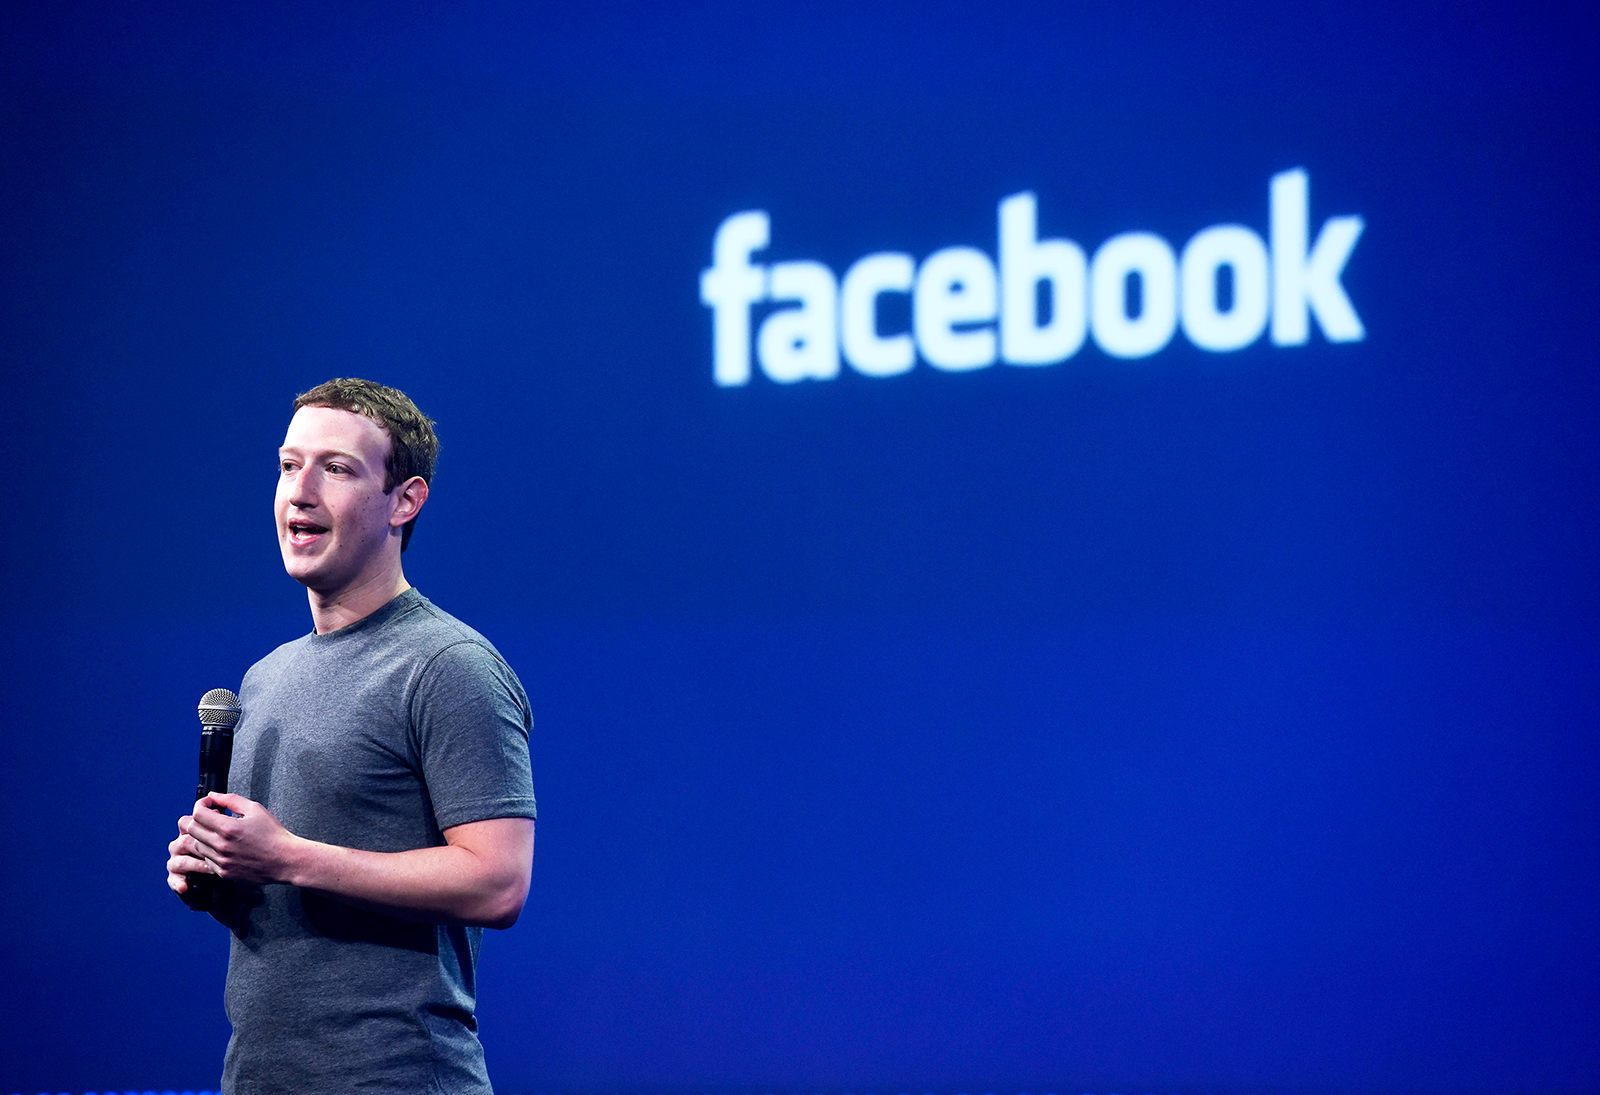 Mark Zuckerberg, fundador do Facebook. (via Getty Images)